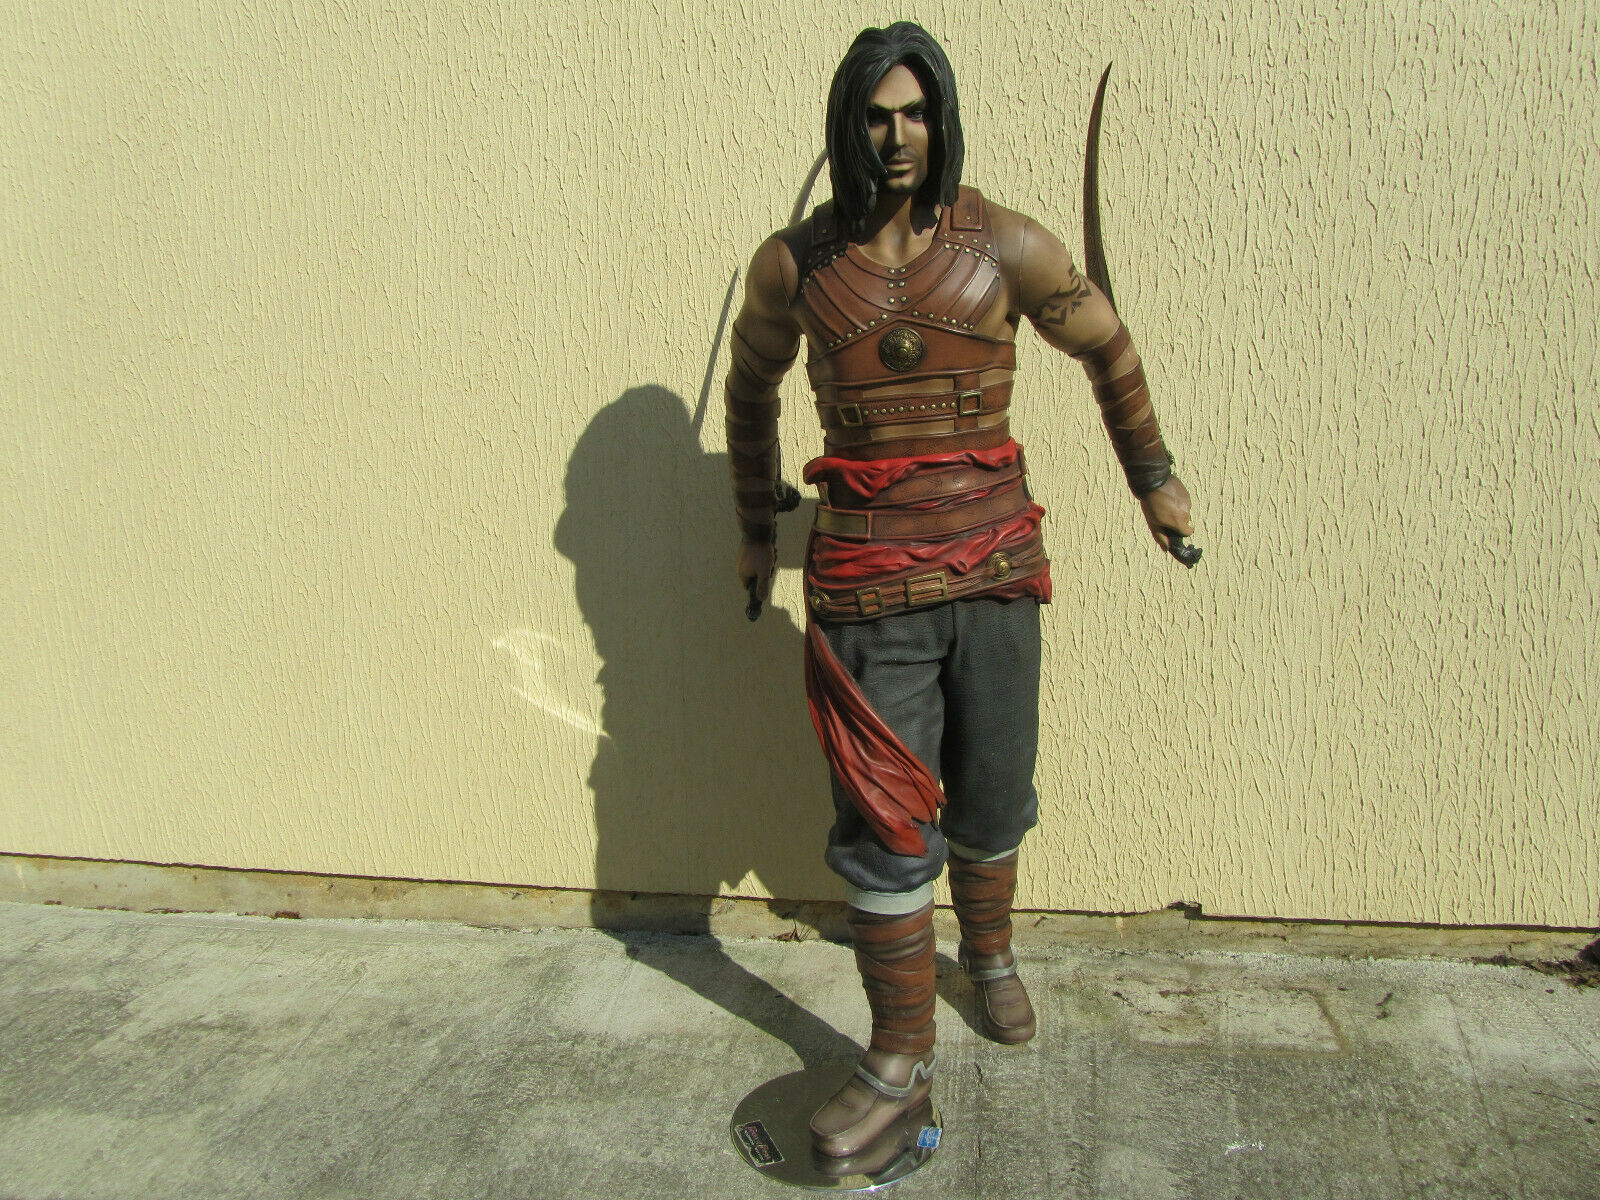 Figurine geant PRINCE OF PERCIA WARRIOR WITHIN Hauteur 1m90